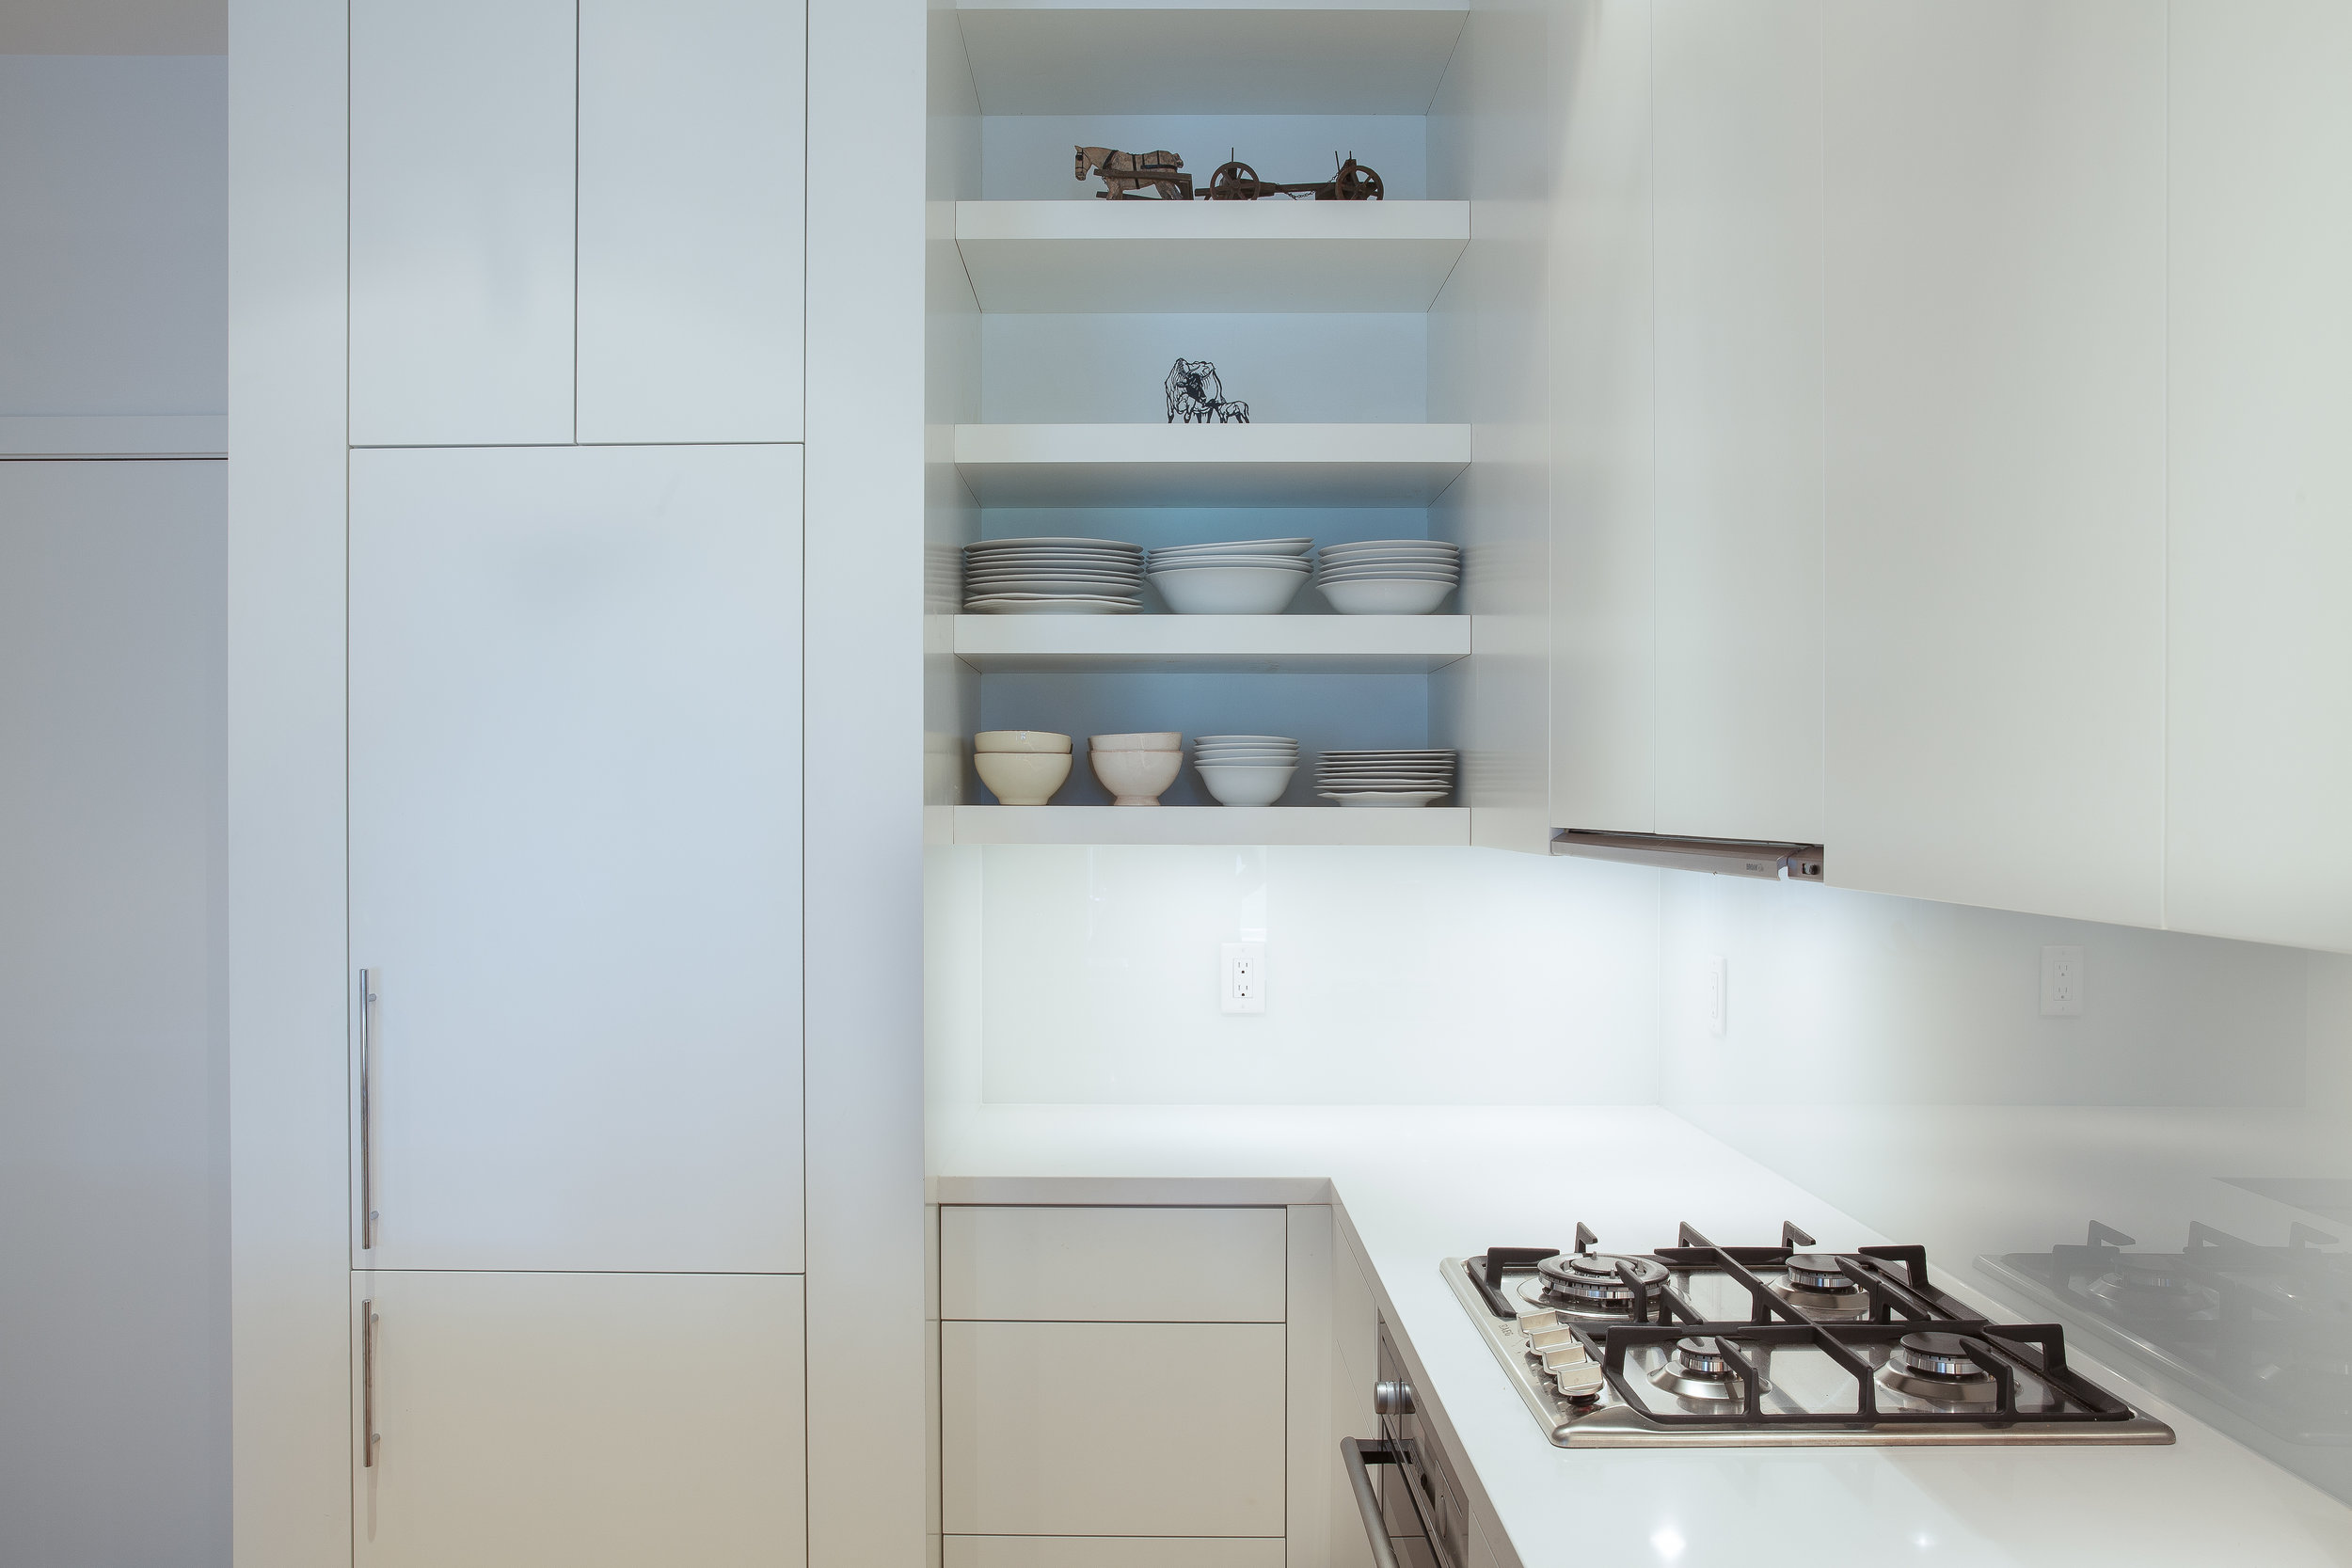 Clean kitchen design photography